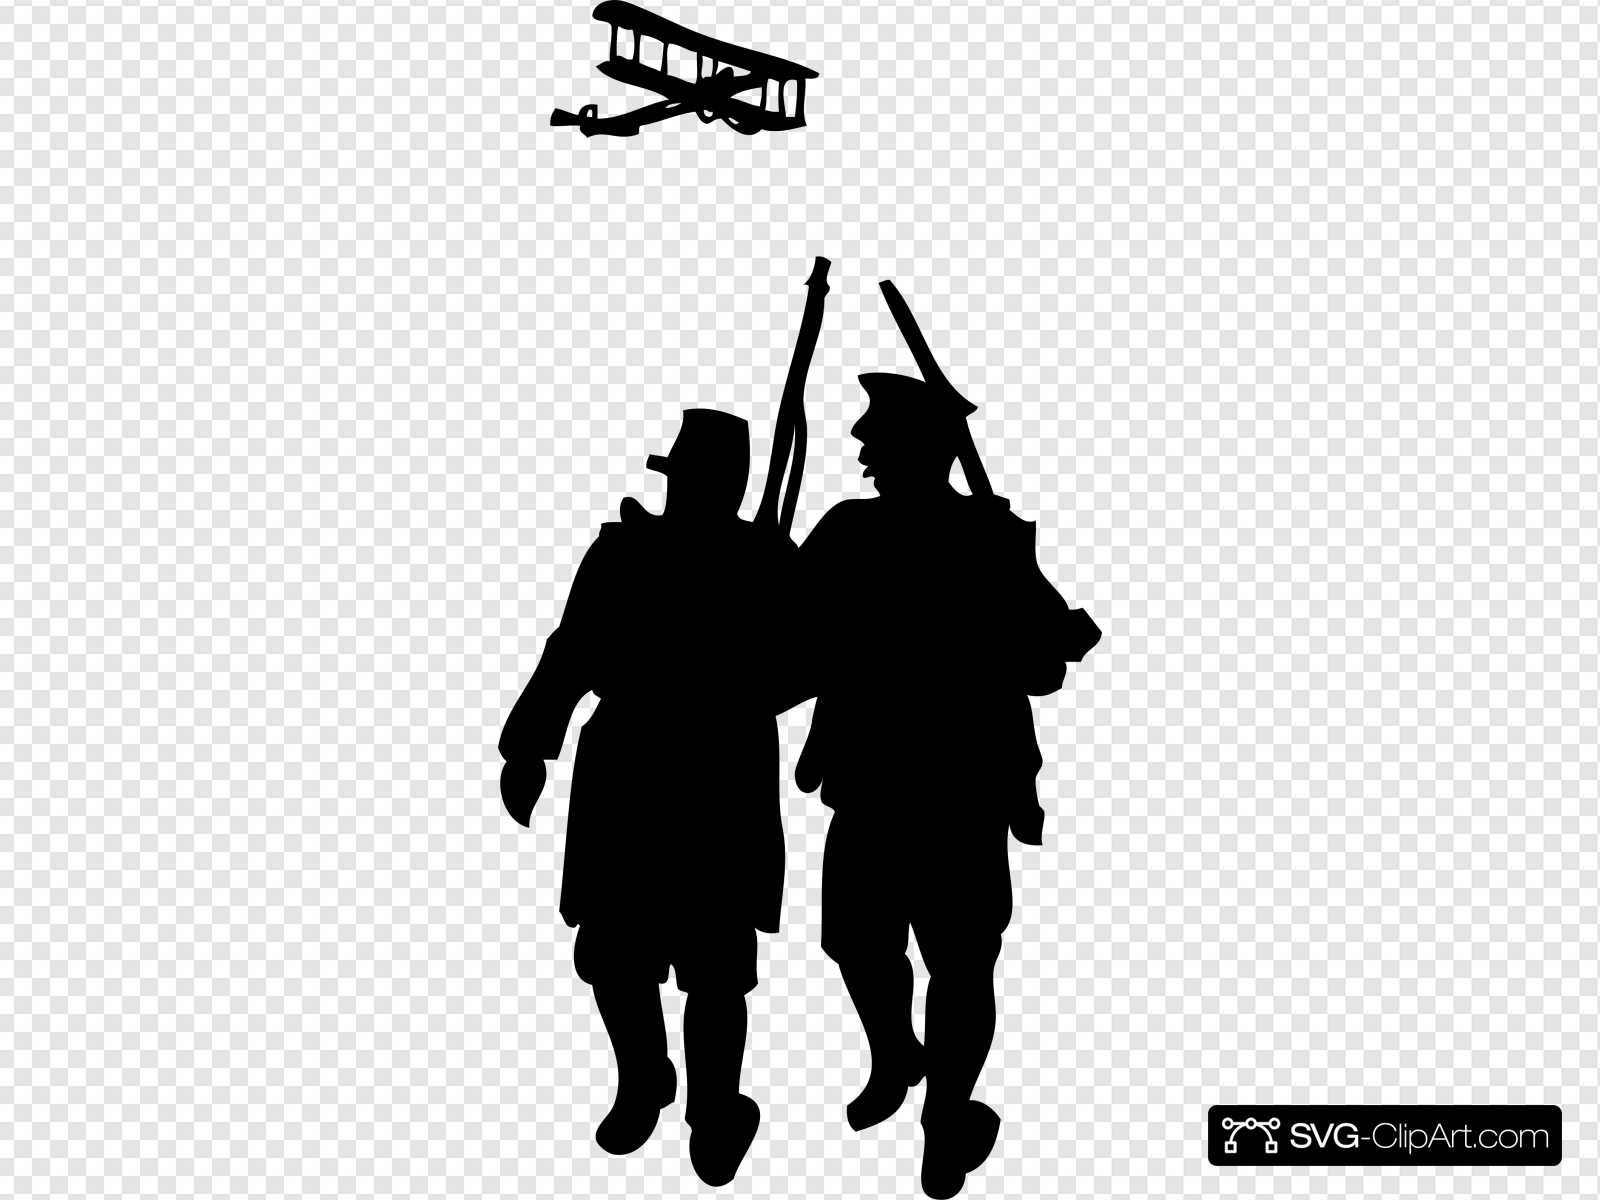 World War I Silhouette Clip art, Icon and SVG.